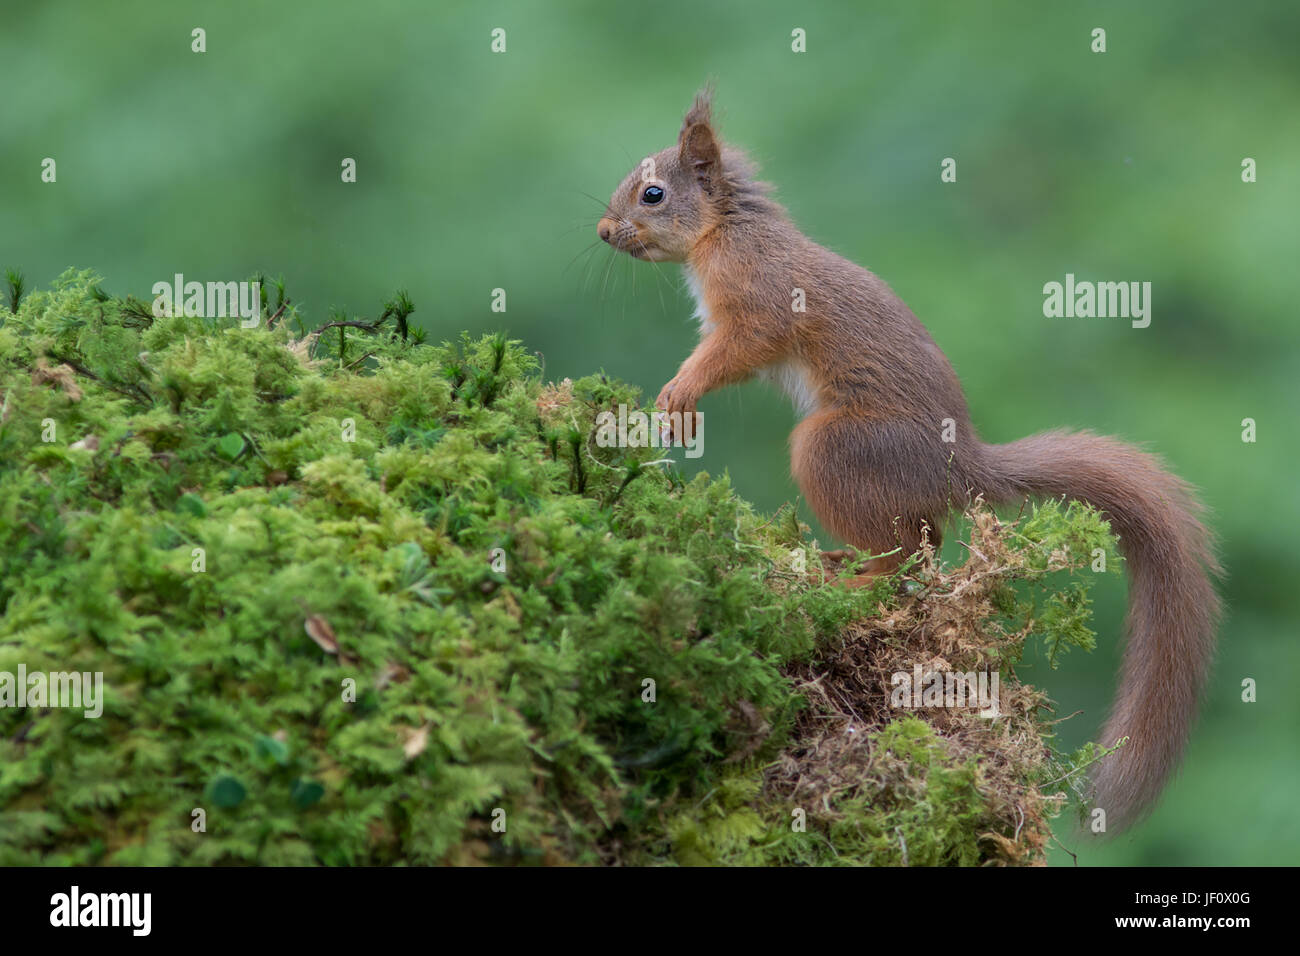 A side view full length profile portrait of an alert red squirrel standing on fauna looking to the left - Stock Image